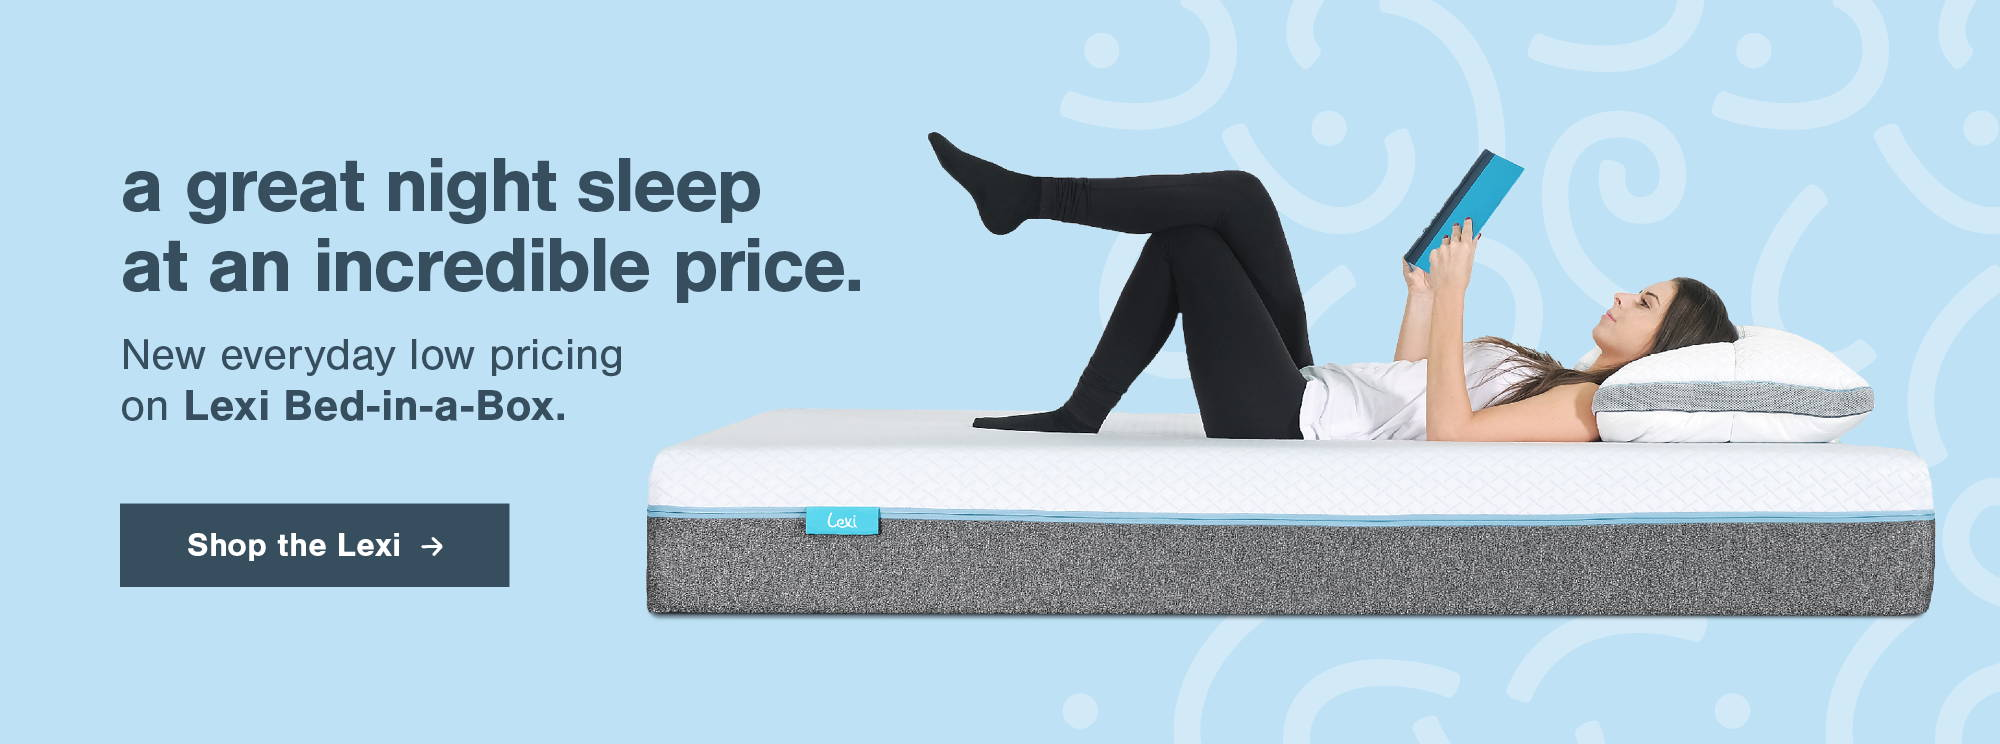 image of lexi bed in a box with text 'a great night sleep at an increadible price. New everyday low pricing on lexi bed in a box. Click to shop lexi